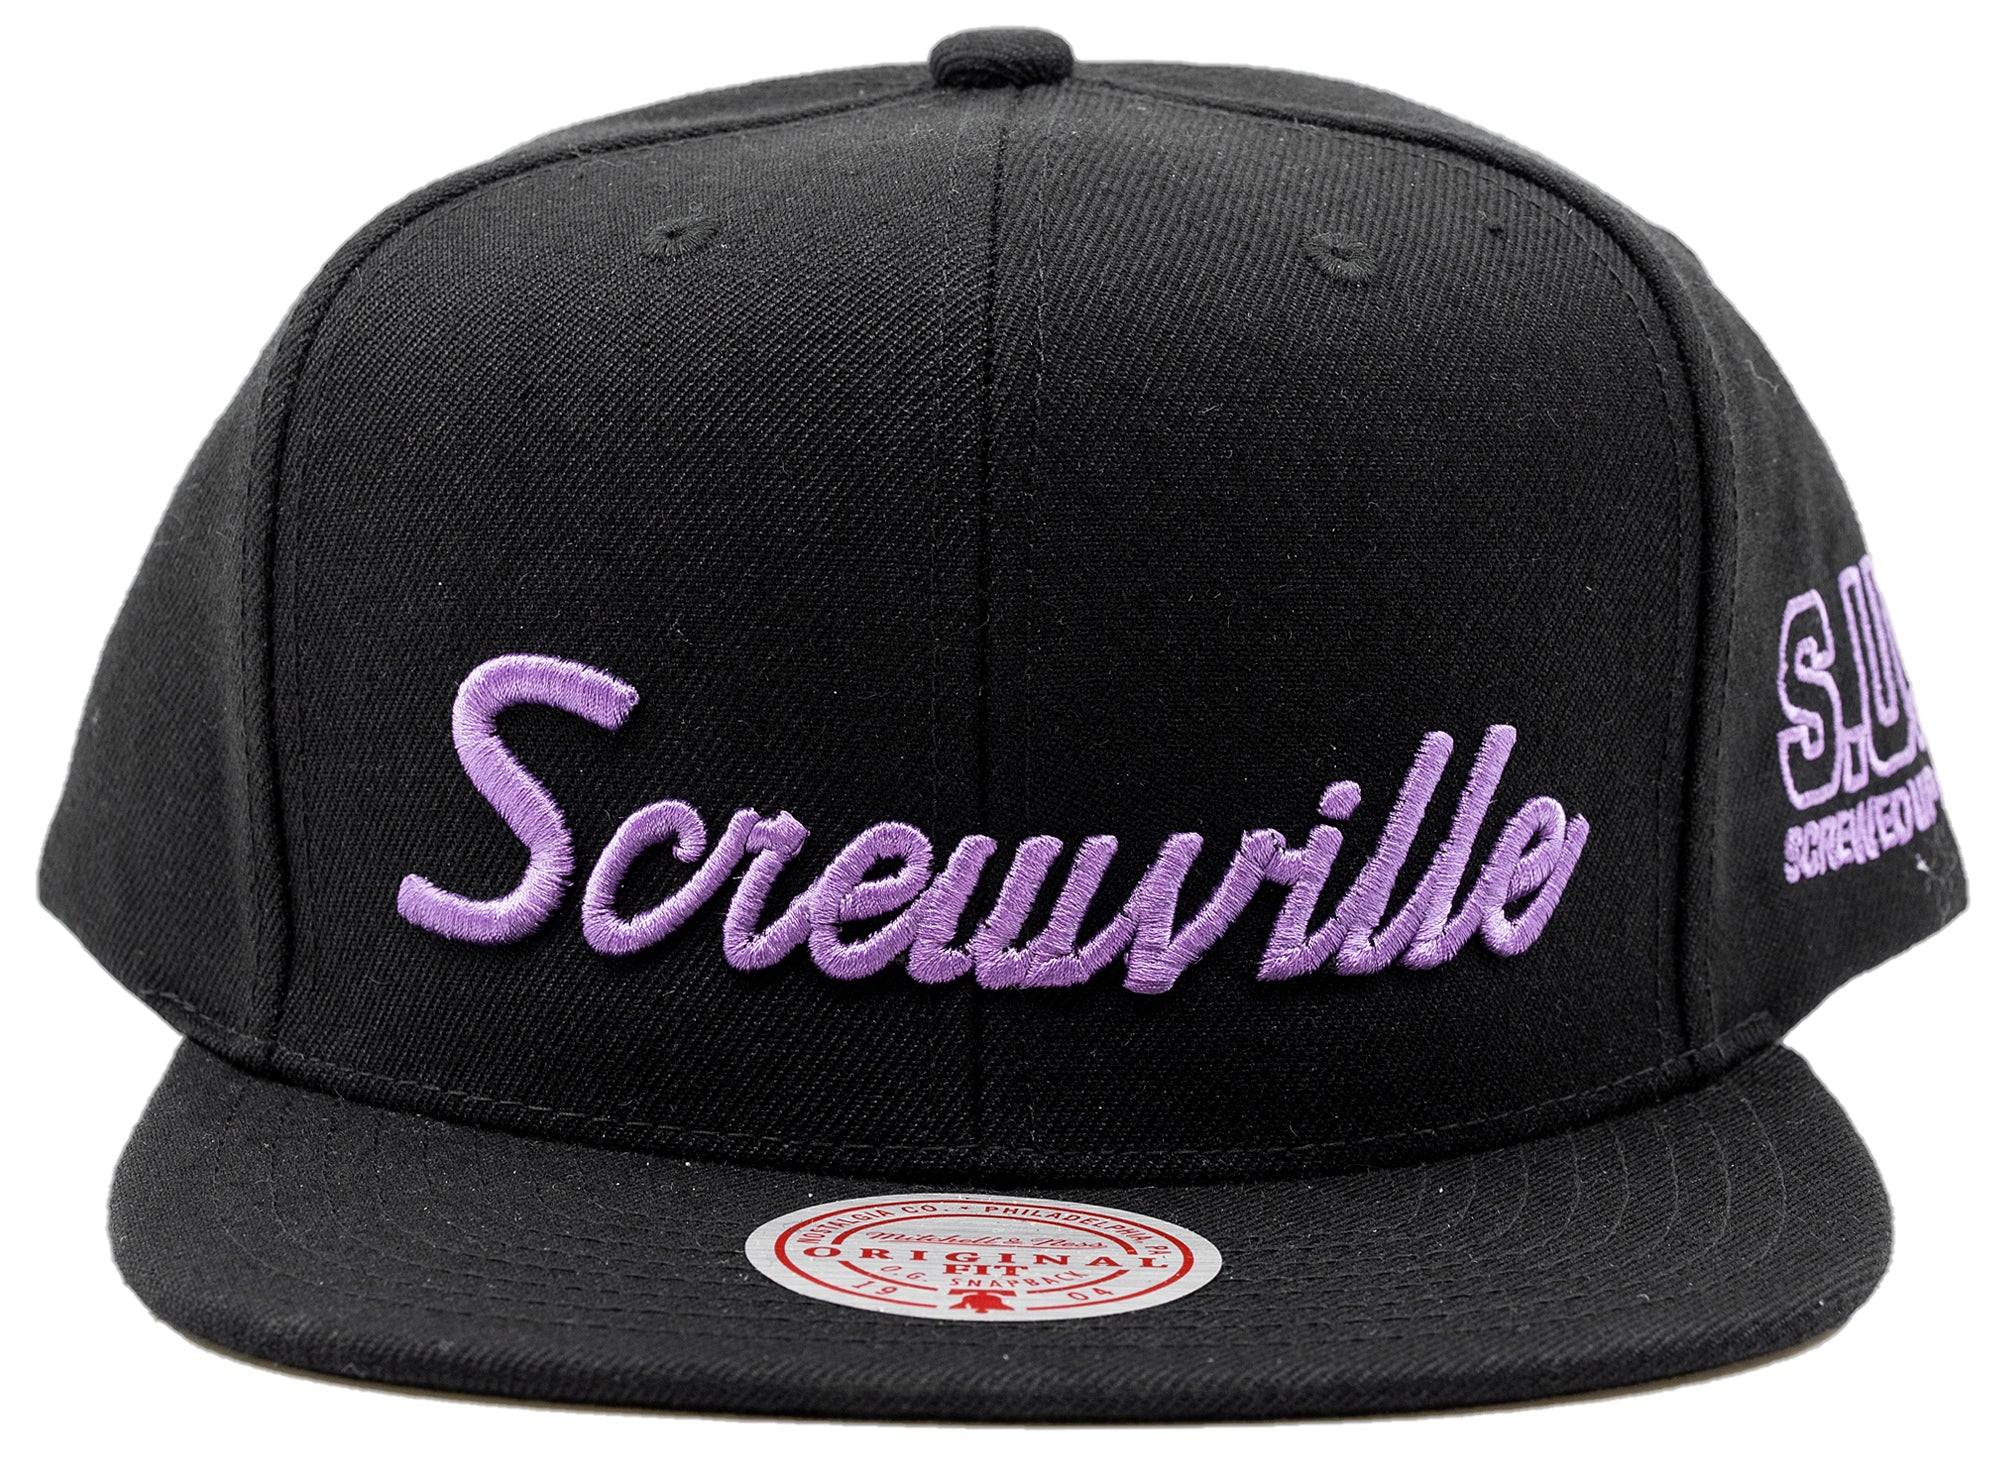 Mitchell & Ness Screwville Screwed Up Click Collab xld